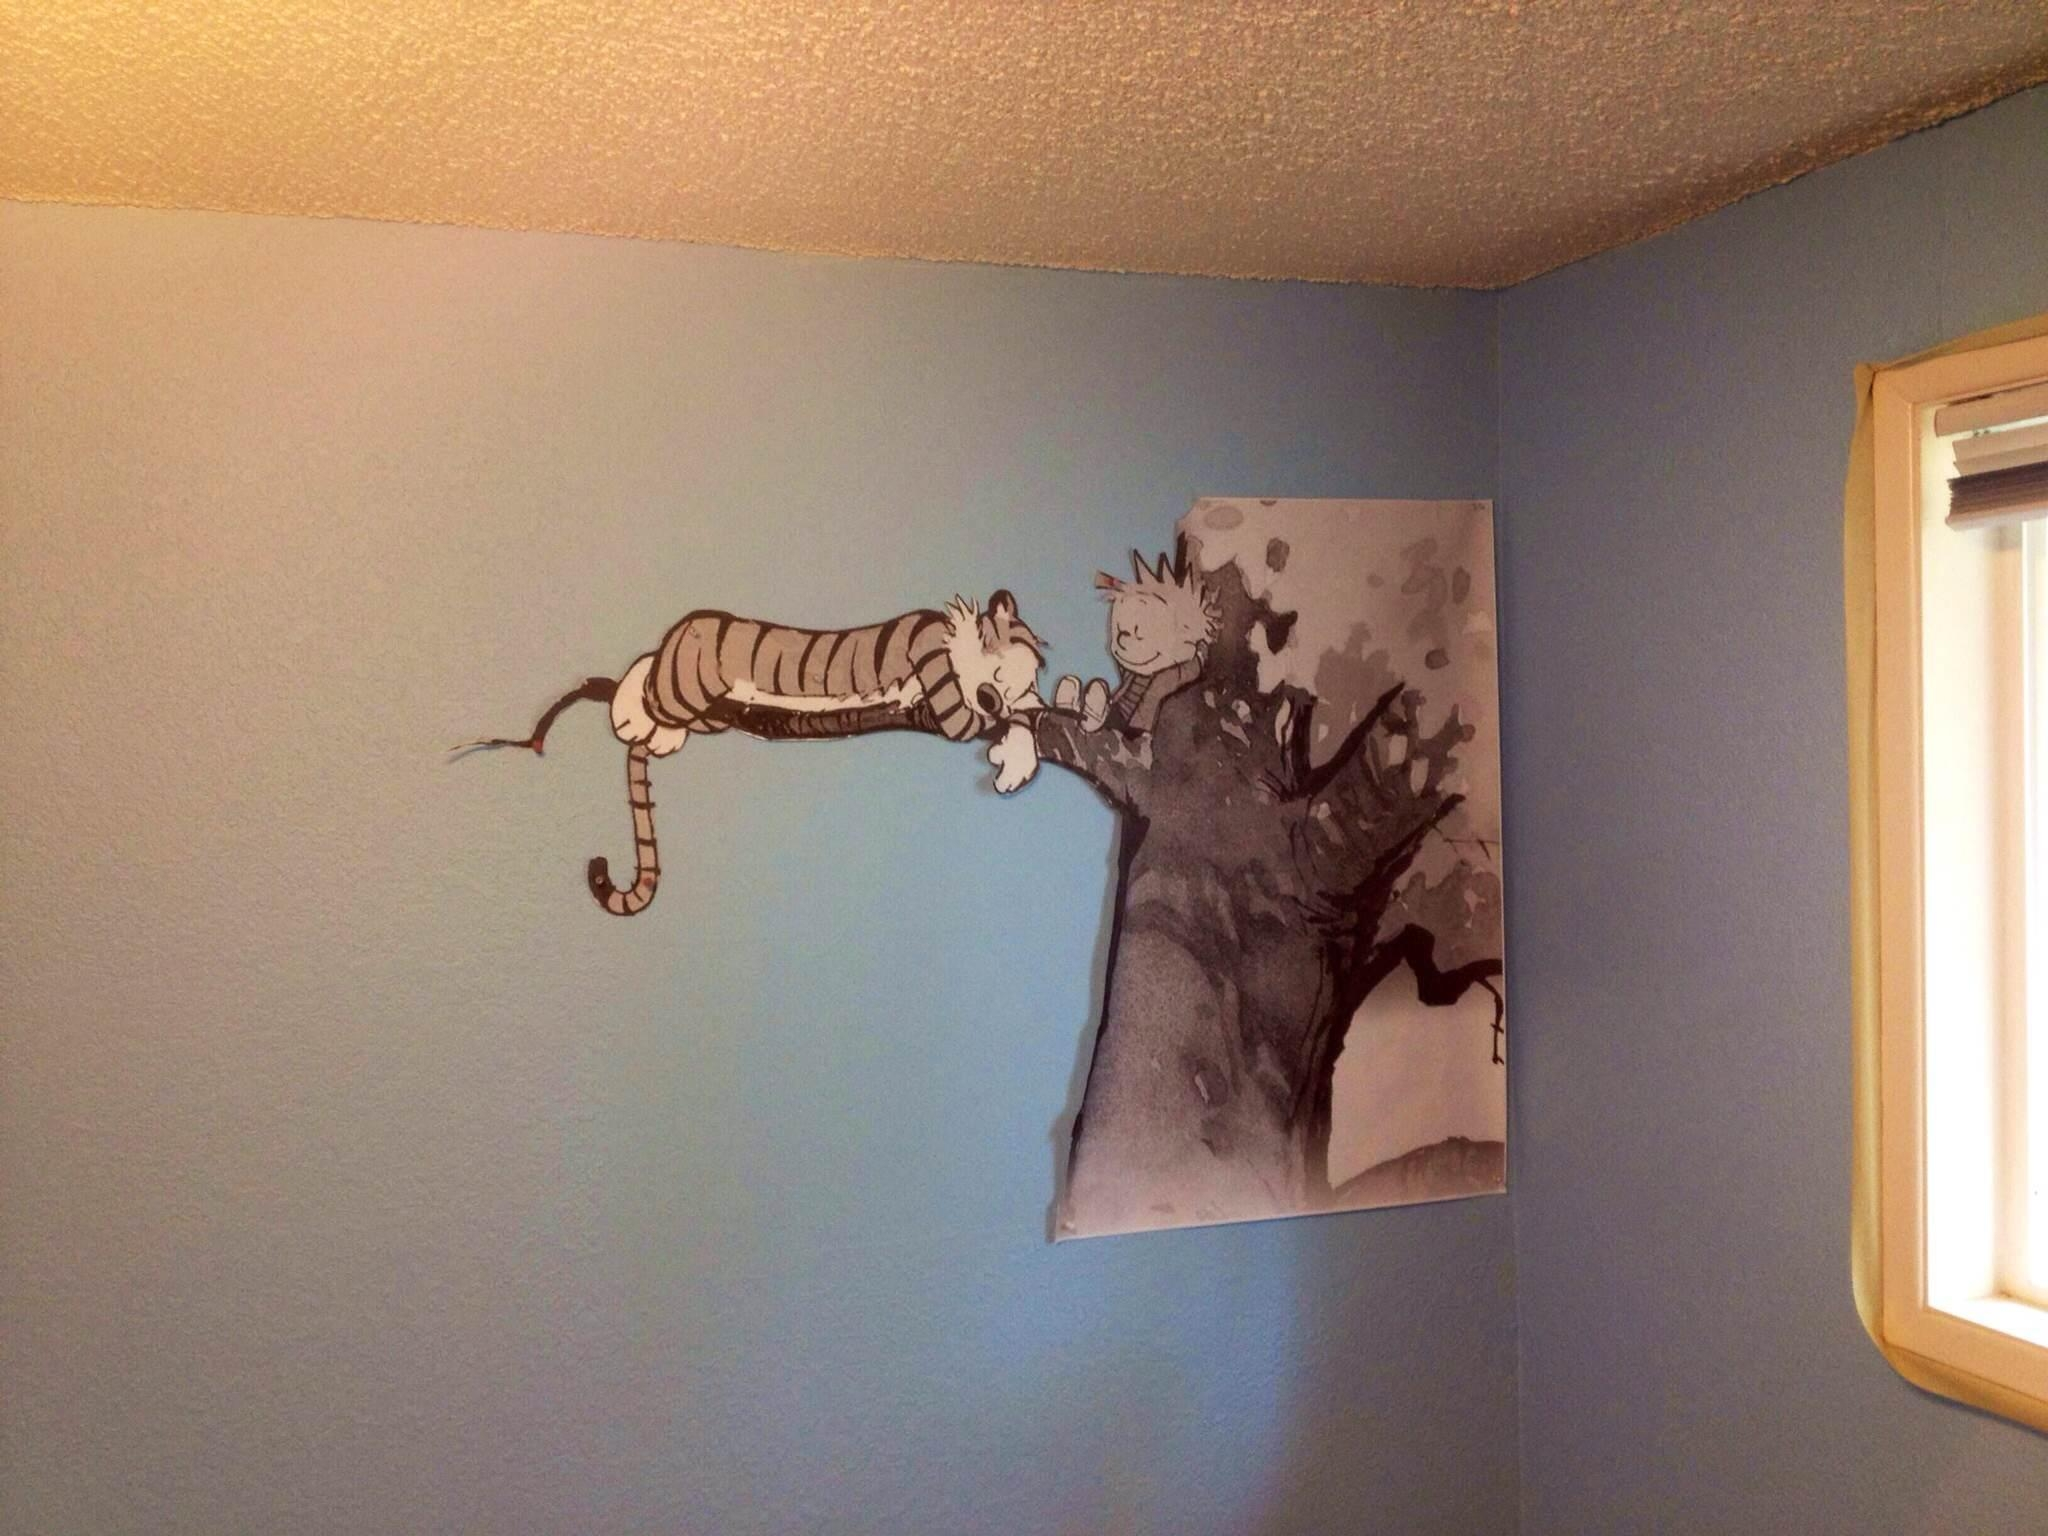 Not An Original Idea, But Here's Our Calvin And Hobbes Mural For Regarding Calvin And Hobbes Wall Art (View 17 of 20)